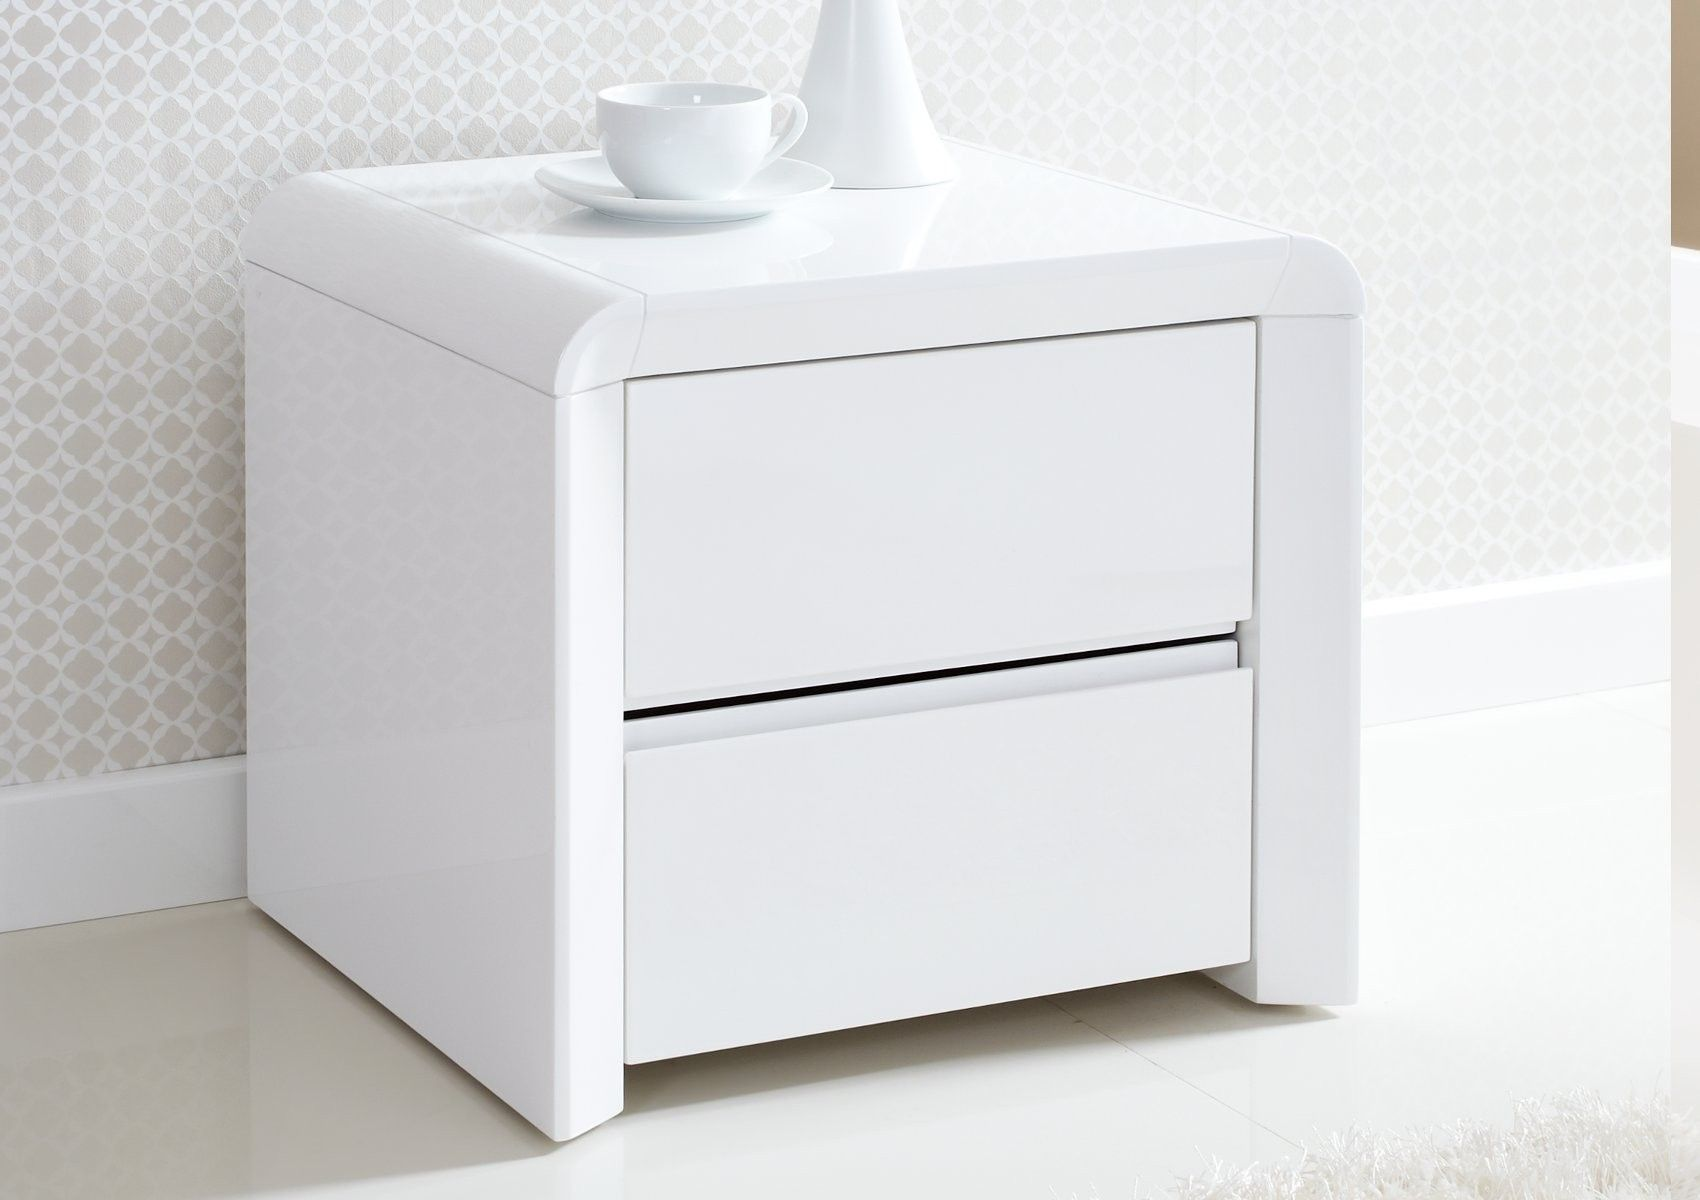 White Bedside Tables Cheap Captivating Old Bedside Table And Cabinet Design To White